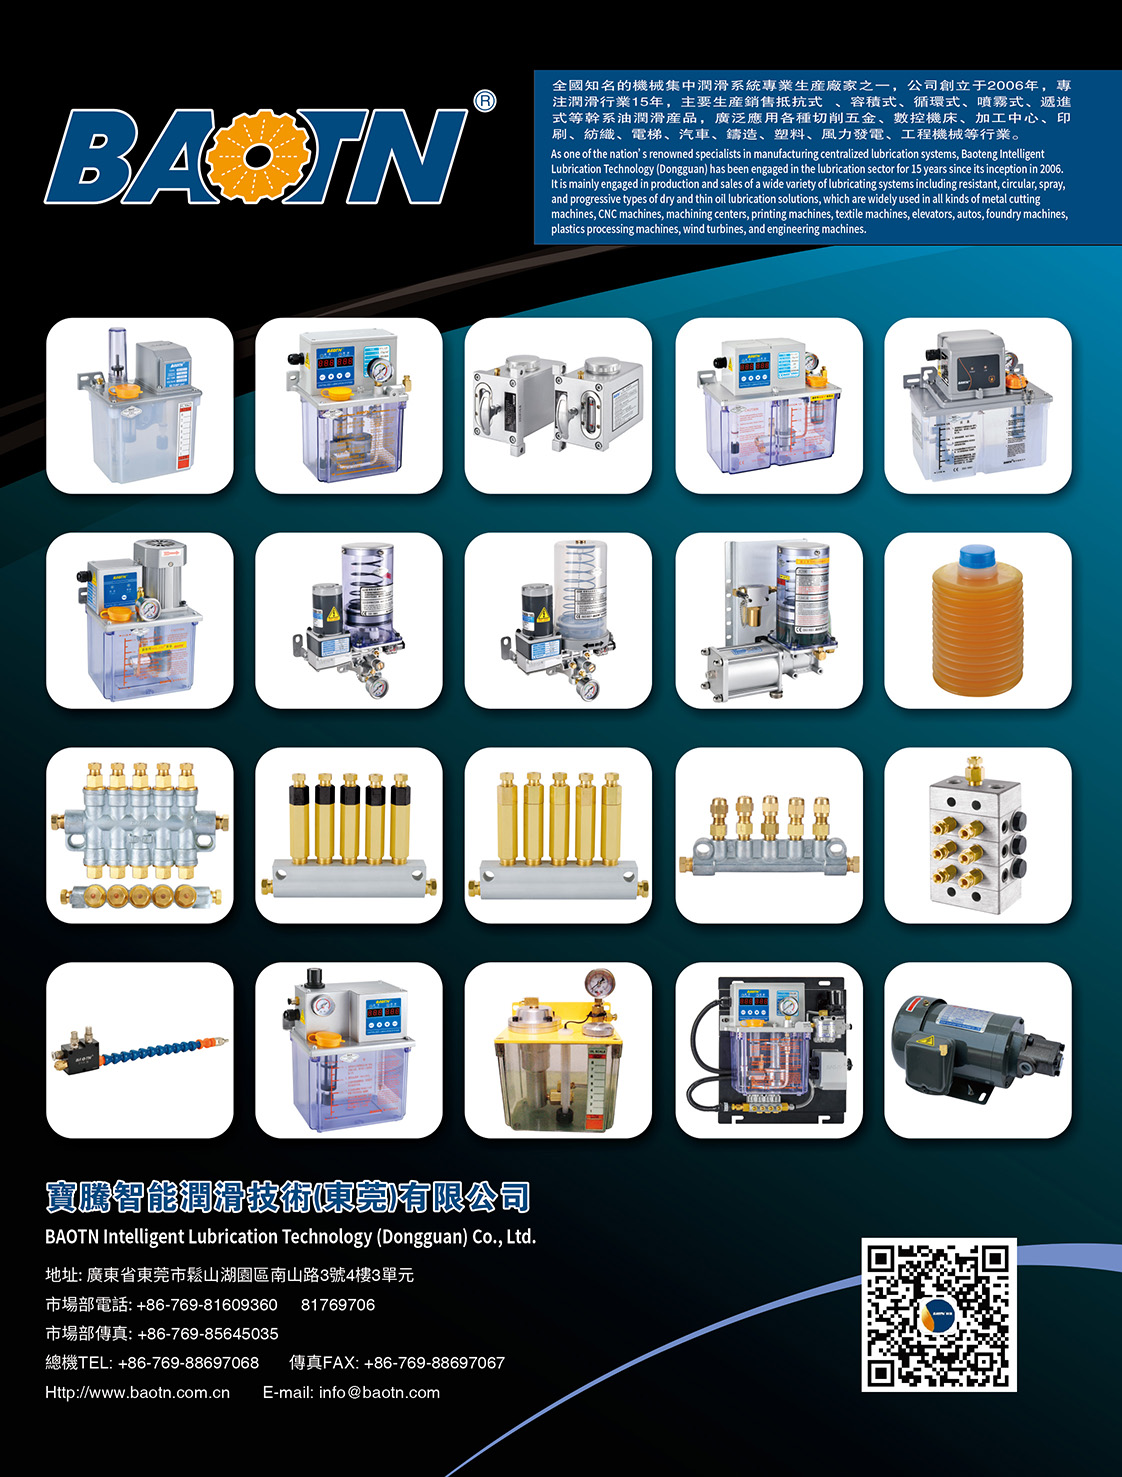 BAOTN INTELLIGENT LUBRICATION TECHNOLOGY (DONGGUAN) CO., LTD.